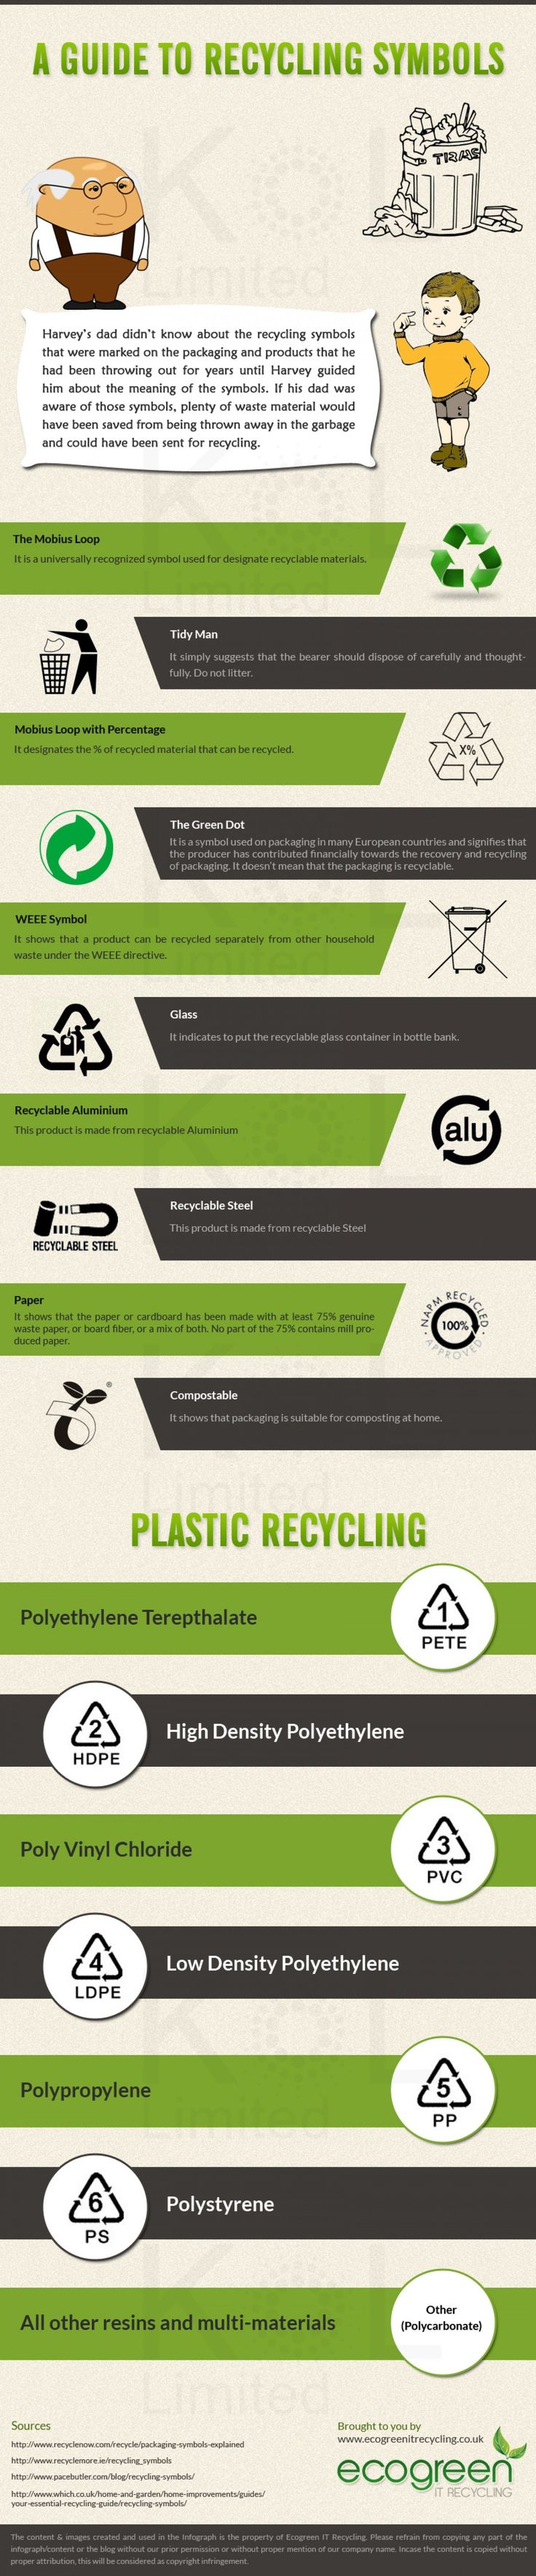 A Guide to Recycling Symbols #Infographic #recycle #sustainability http://calgary.isgreen.ca/ #recyclinginfographic